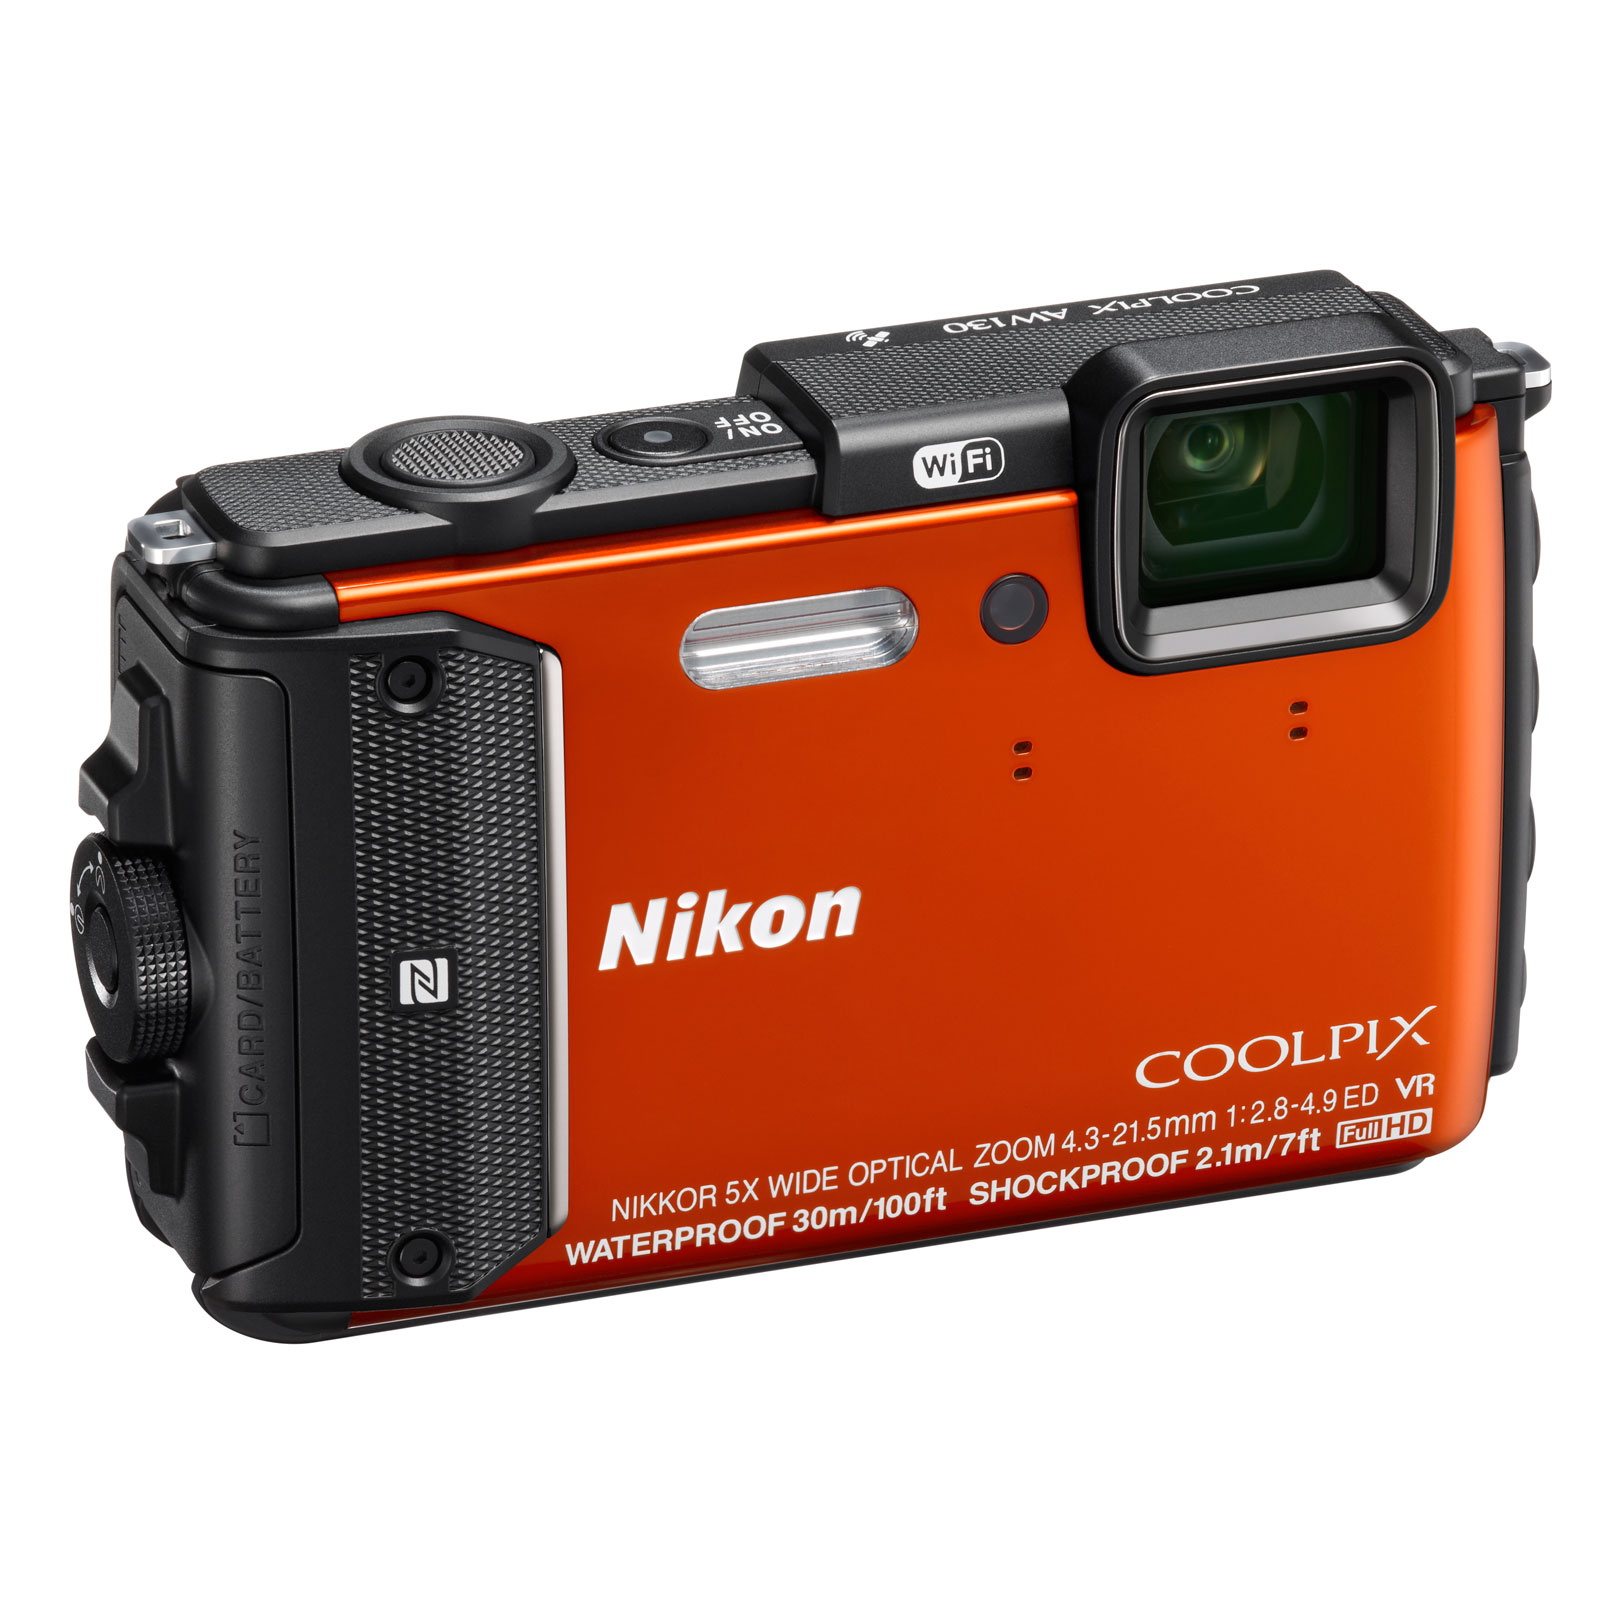 nikon coolpix aw130 orange appareil photo num rique nikon sur. Black Bedroom Furniture Sets. Home Design Ideas